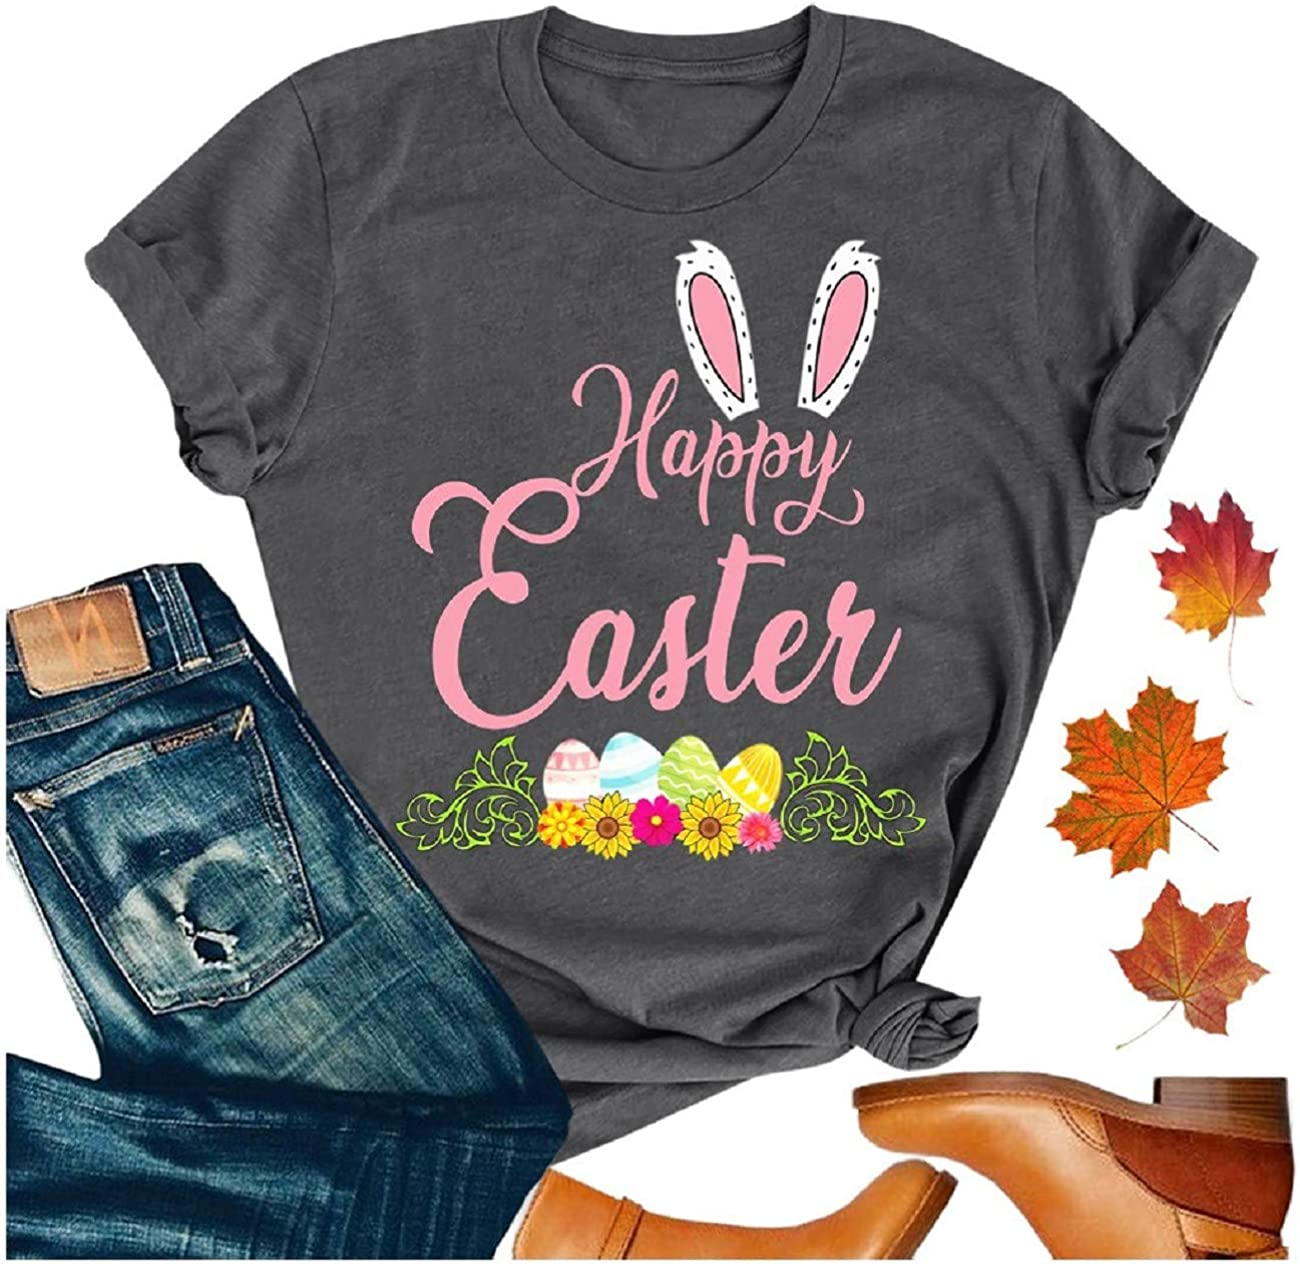 Tsmile Womens Easter Bunny Printing Plus Size Short Sleeve O-Neck Tee Cotton Blend T-Shirt Tunic Blouse Tops